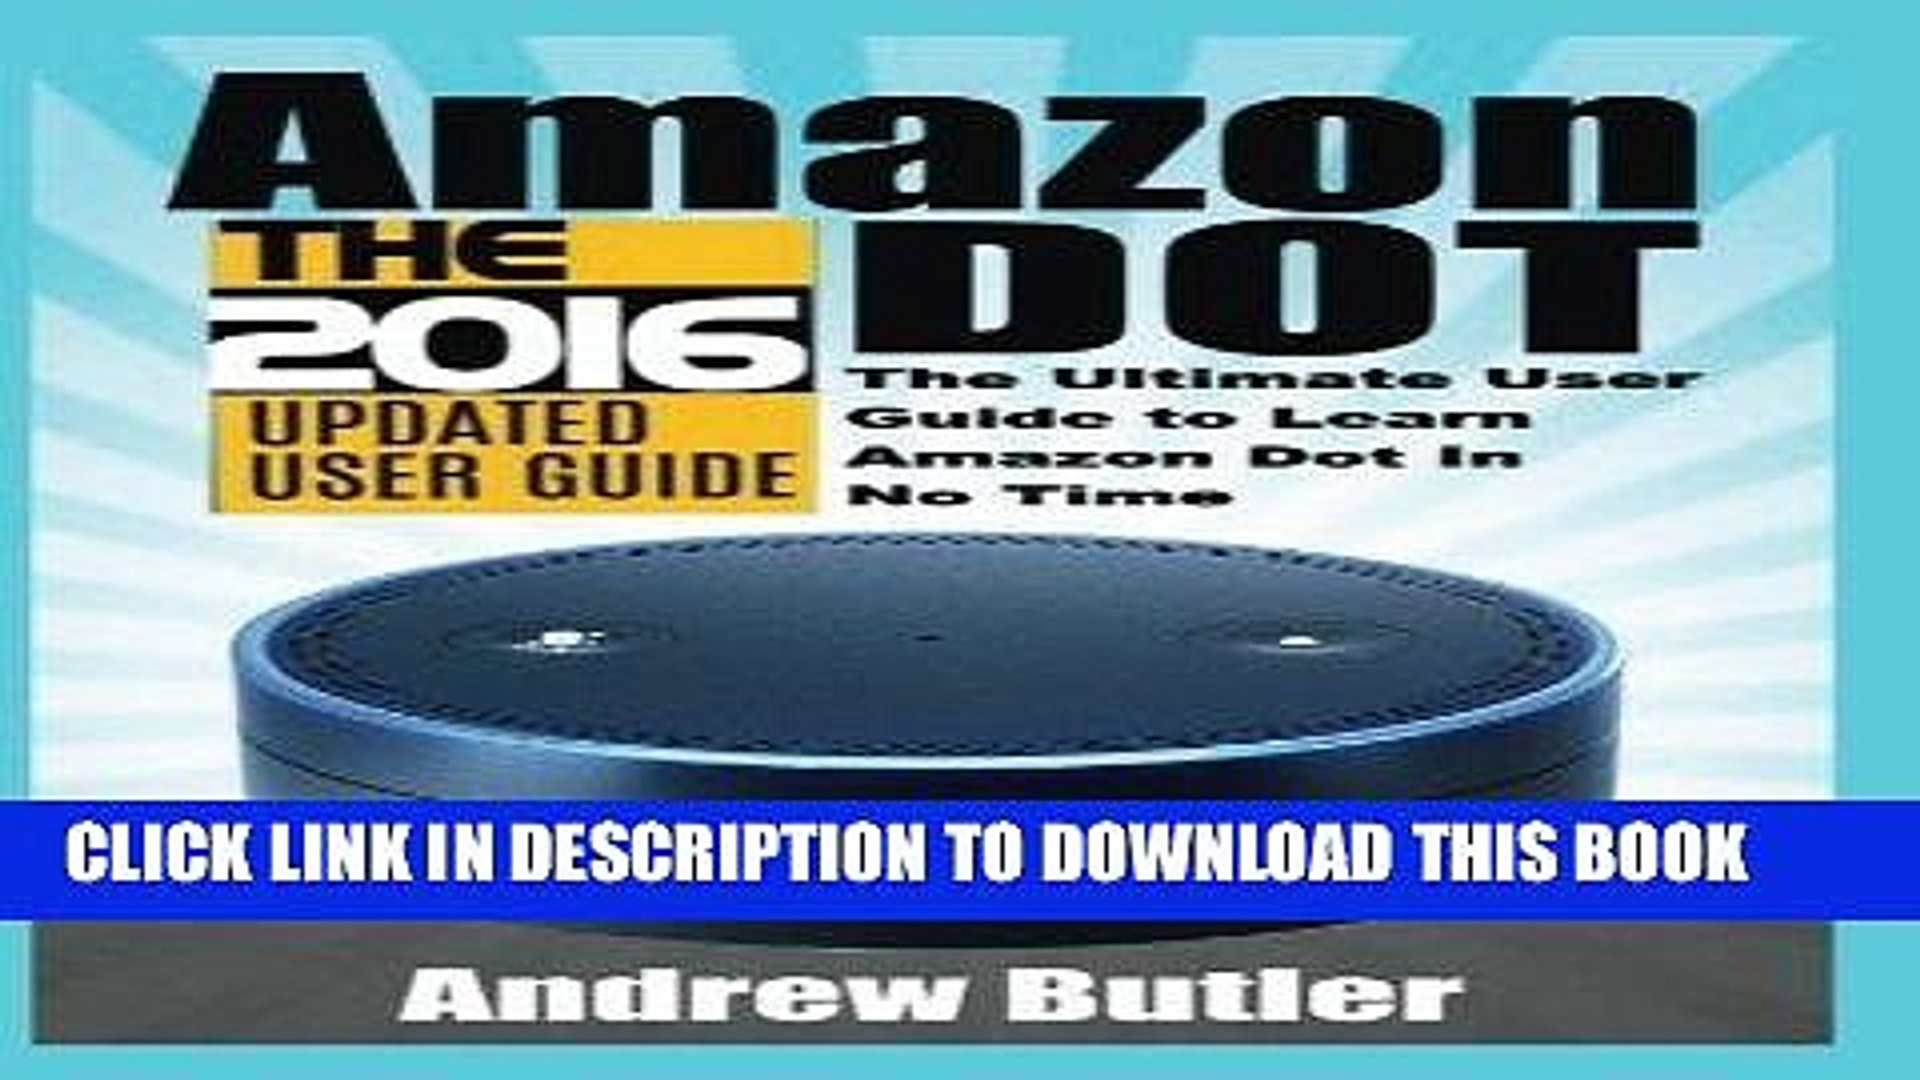 Best Seller Amazon Echo: Dot:The Ultimate User Guide to Learn Amazon Dot In No Time (Amazon Echo